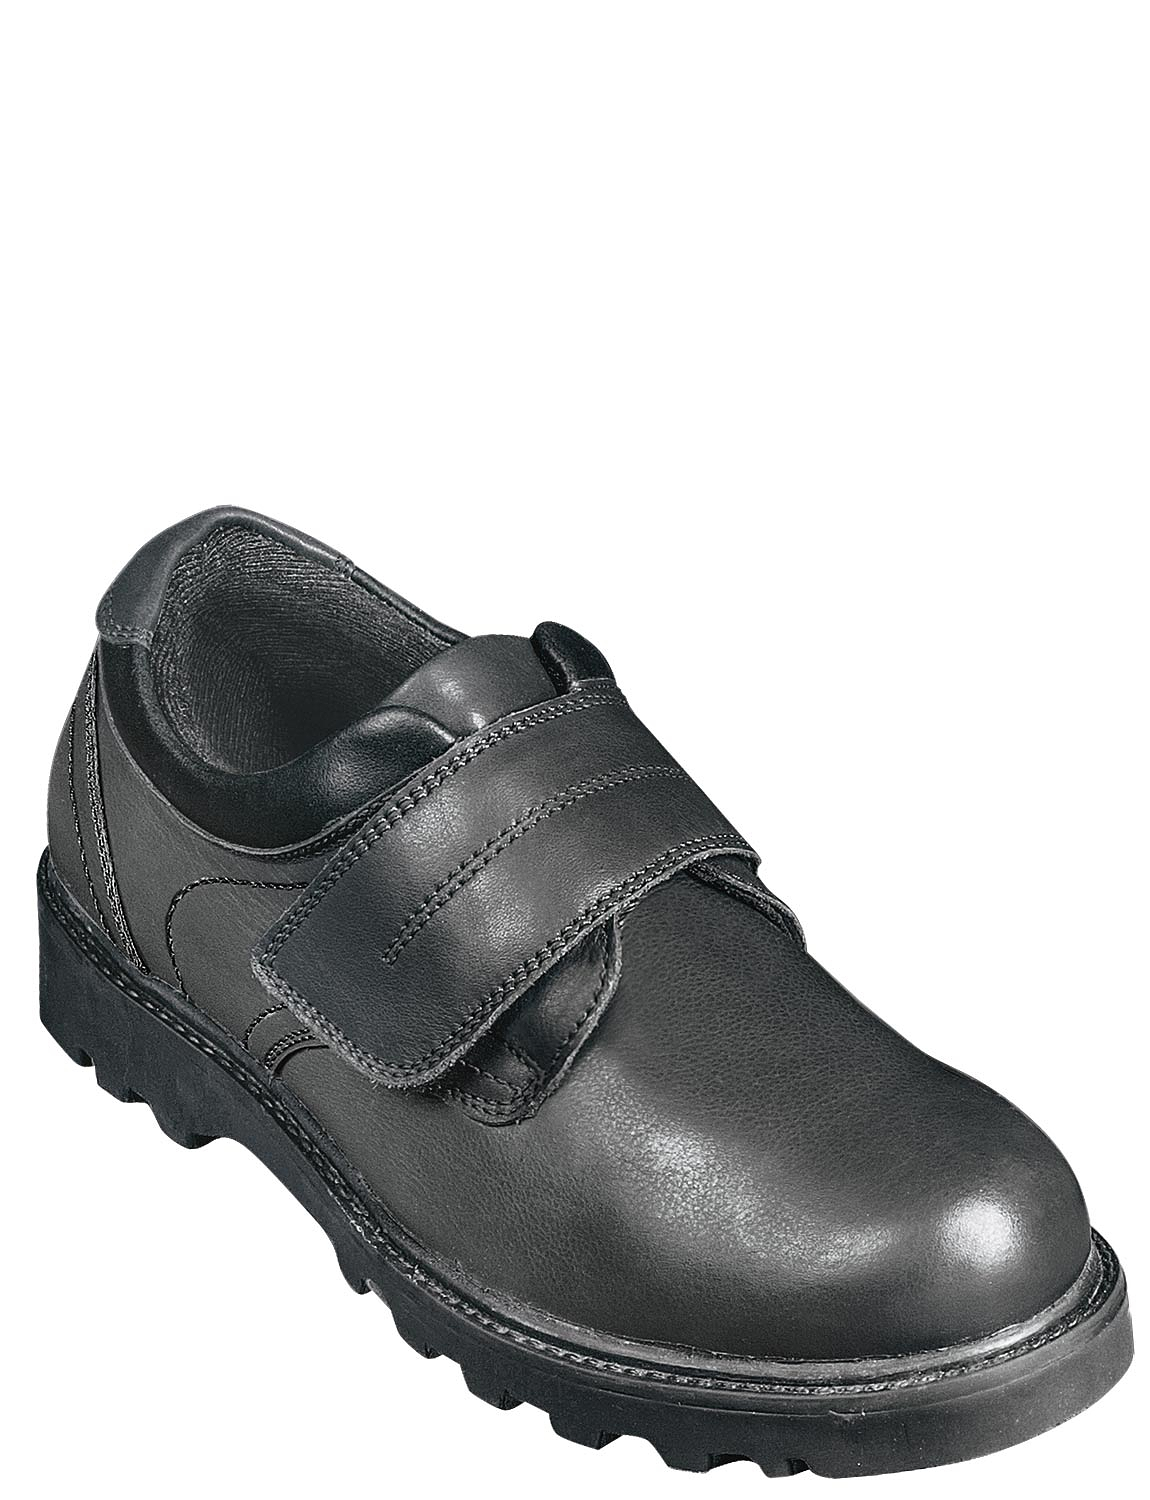 070136421bd23 Mens Real Leather Touch And Close Walking Shoes - Menswear Footwear ...